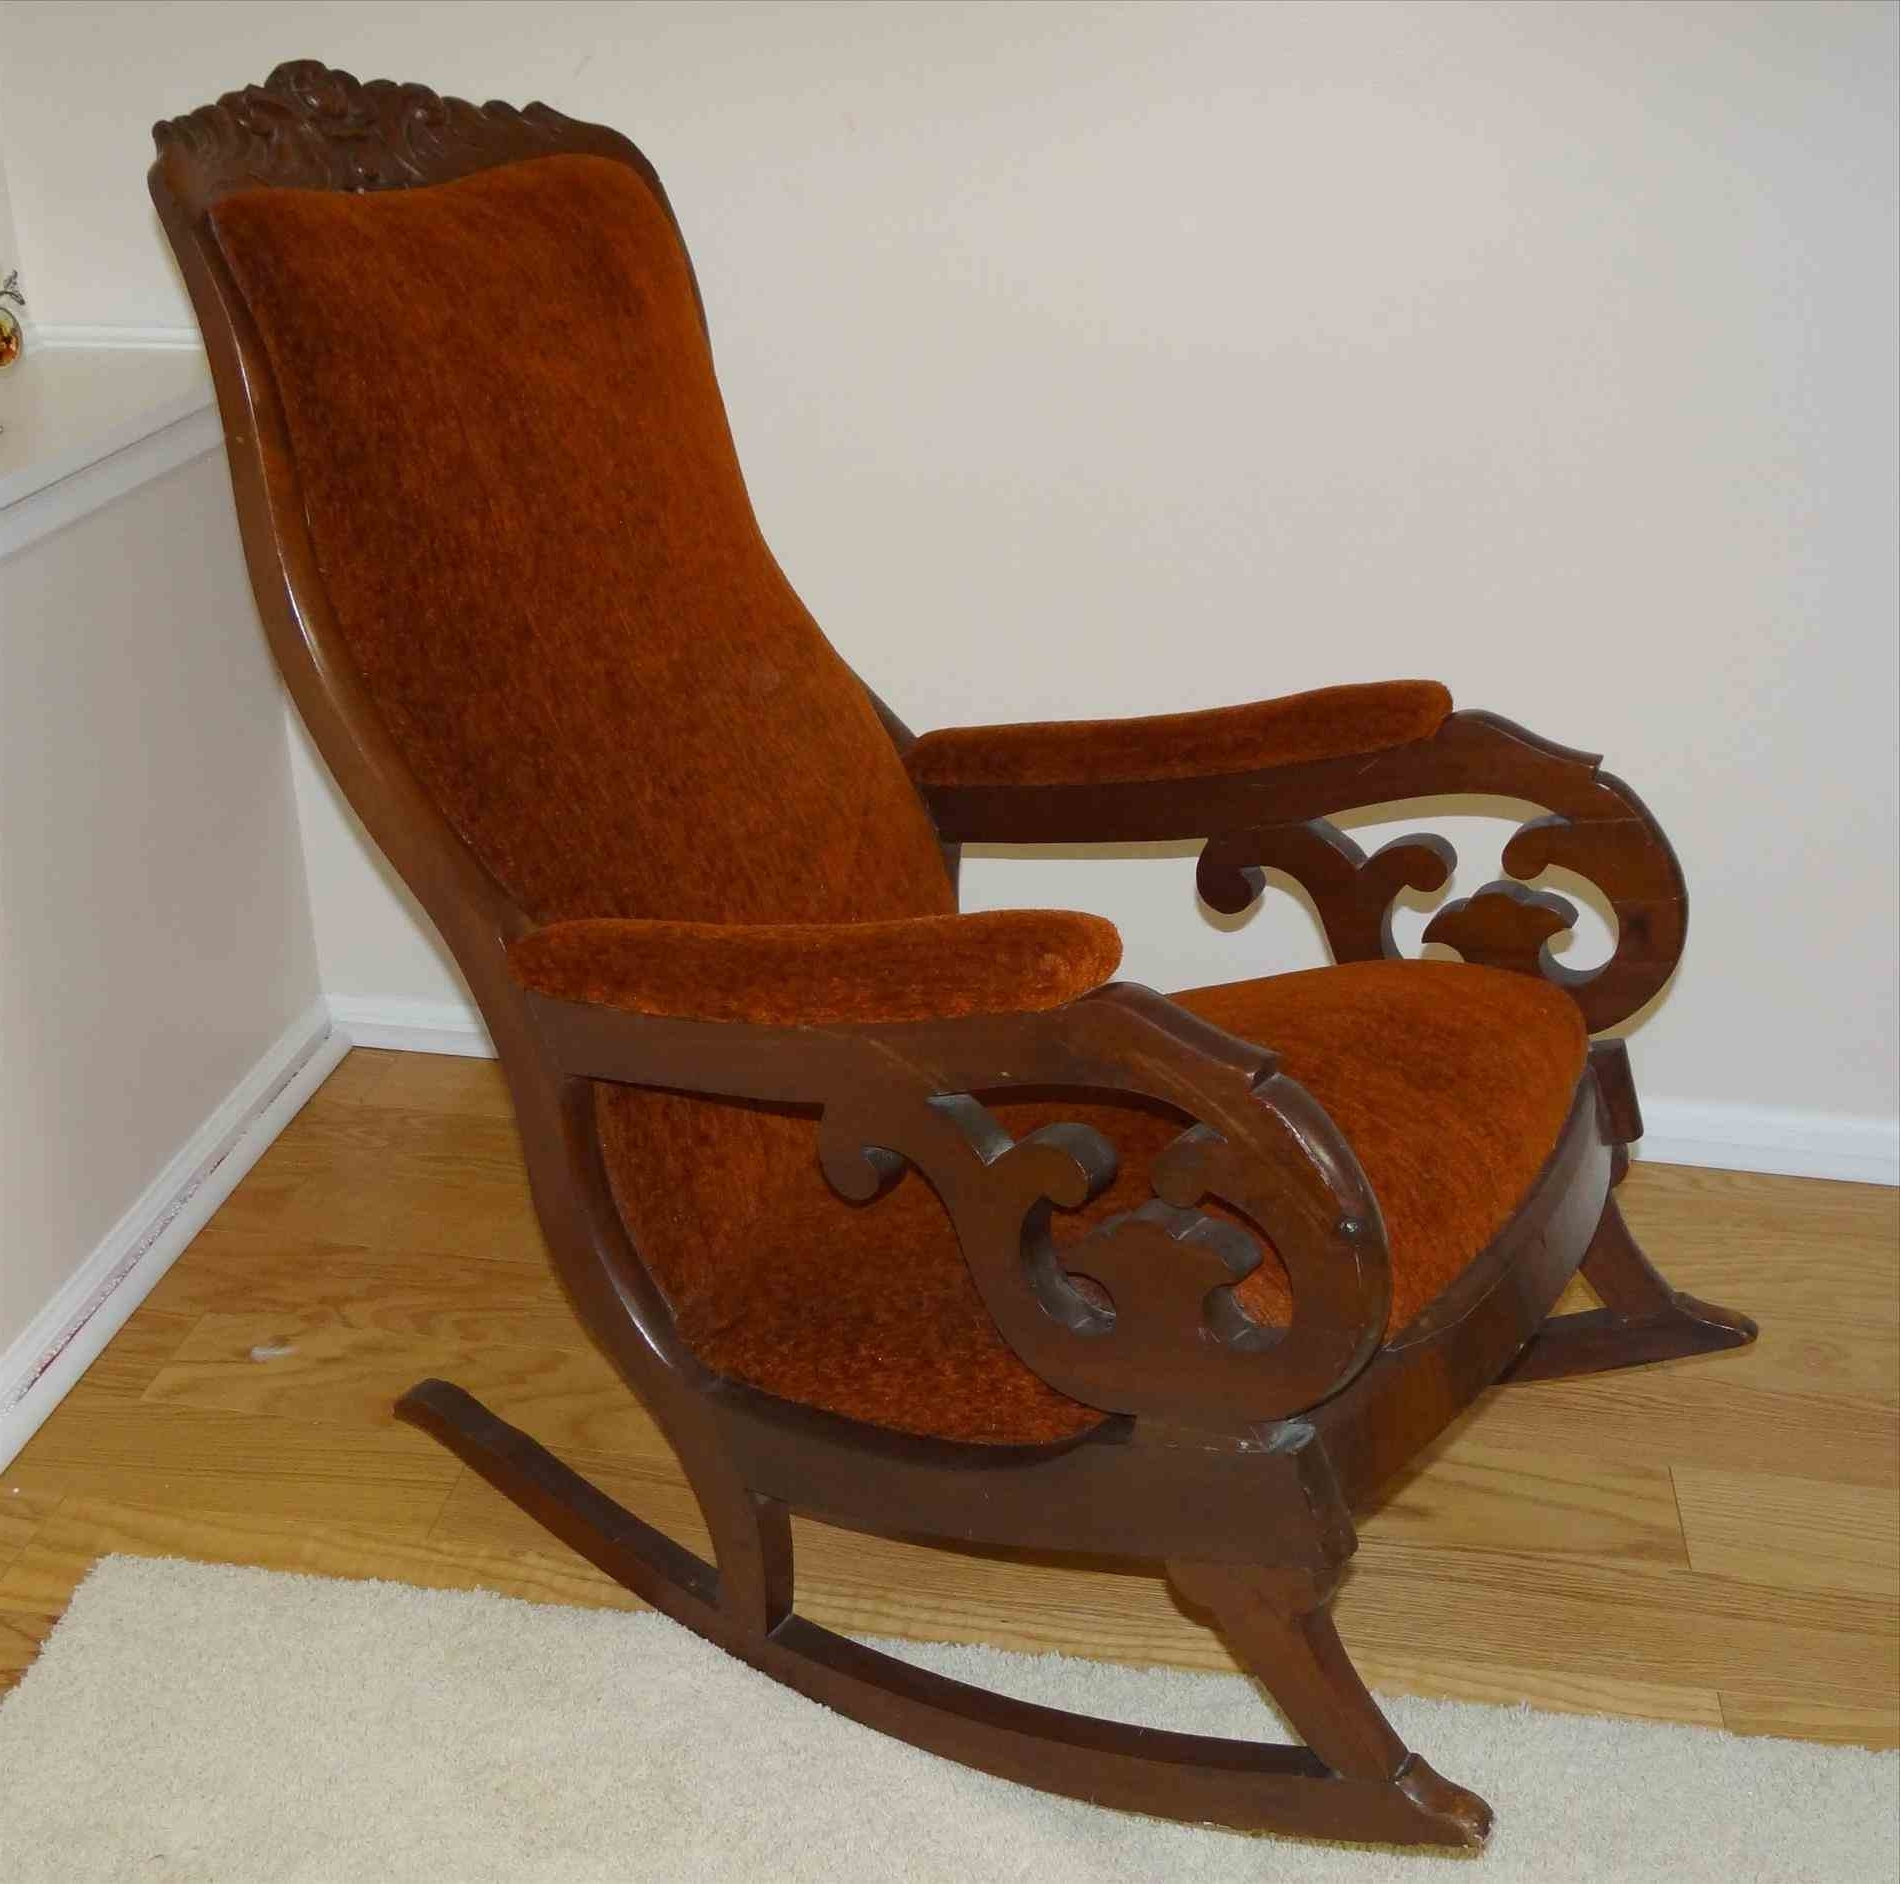 Old Fashioned Rocking Chairs For Most Up To Date Antique Old Fashioned Rocking Chair Mahogany Upholstered Rocking (View 2 of 15)